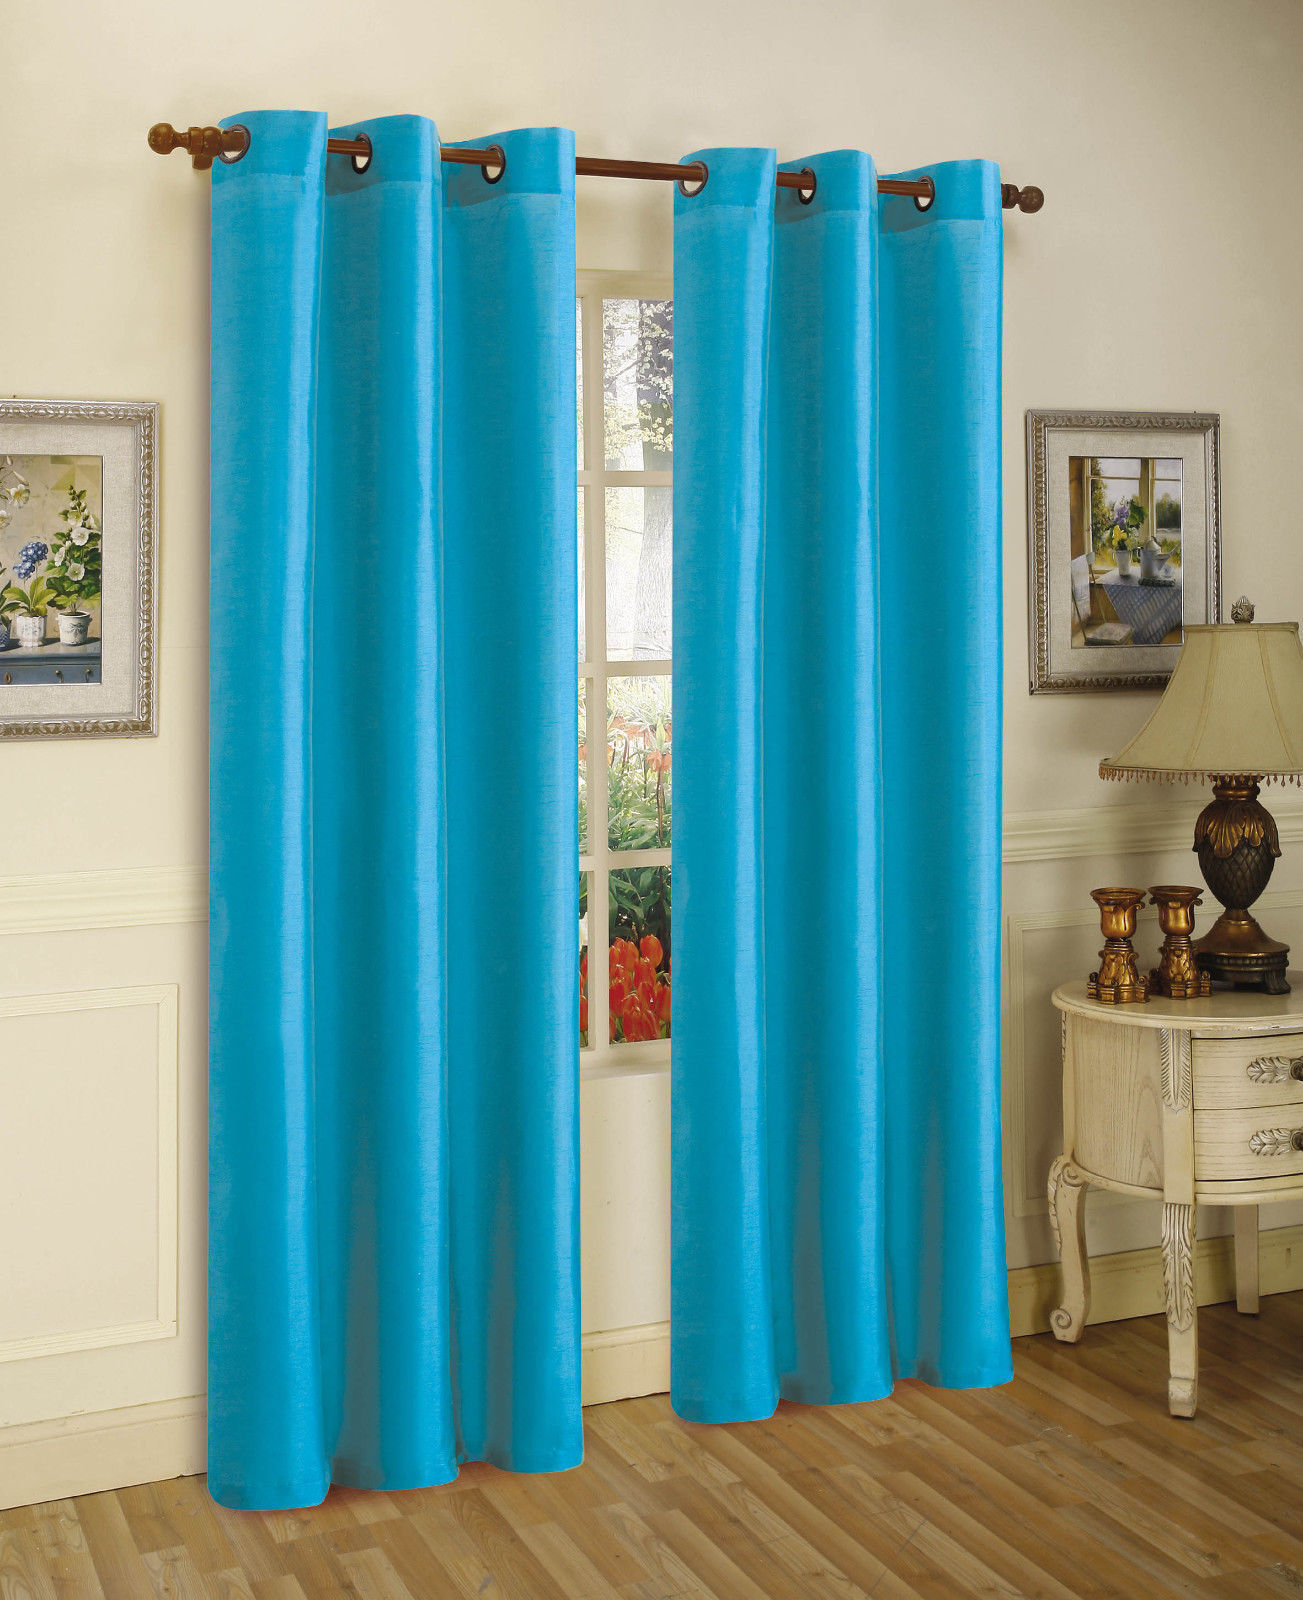 2 aqua blue panel room darkening 99 blackout grommet